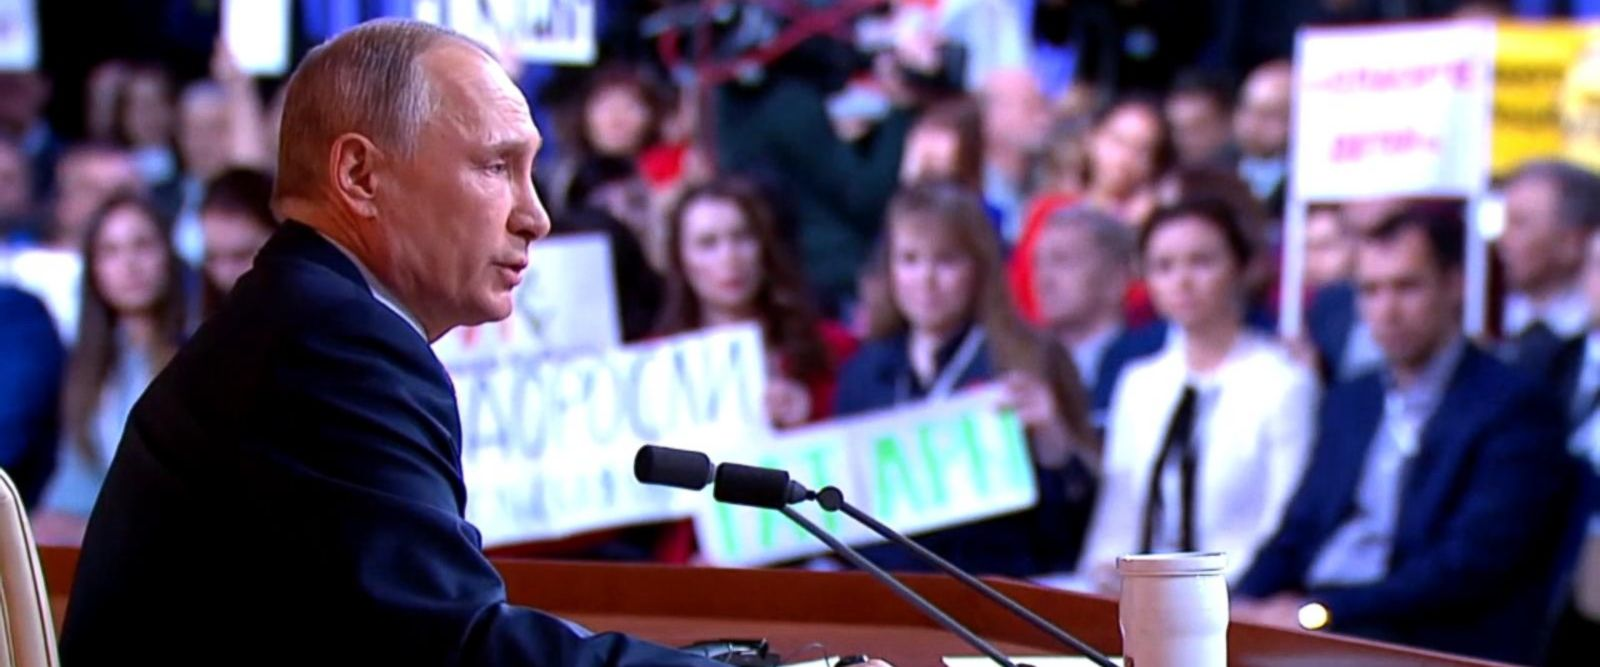 VIDEO: Putin calls Russia collusion 'made-up spy mania'